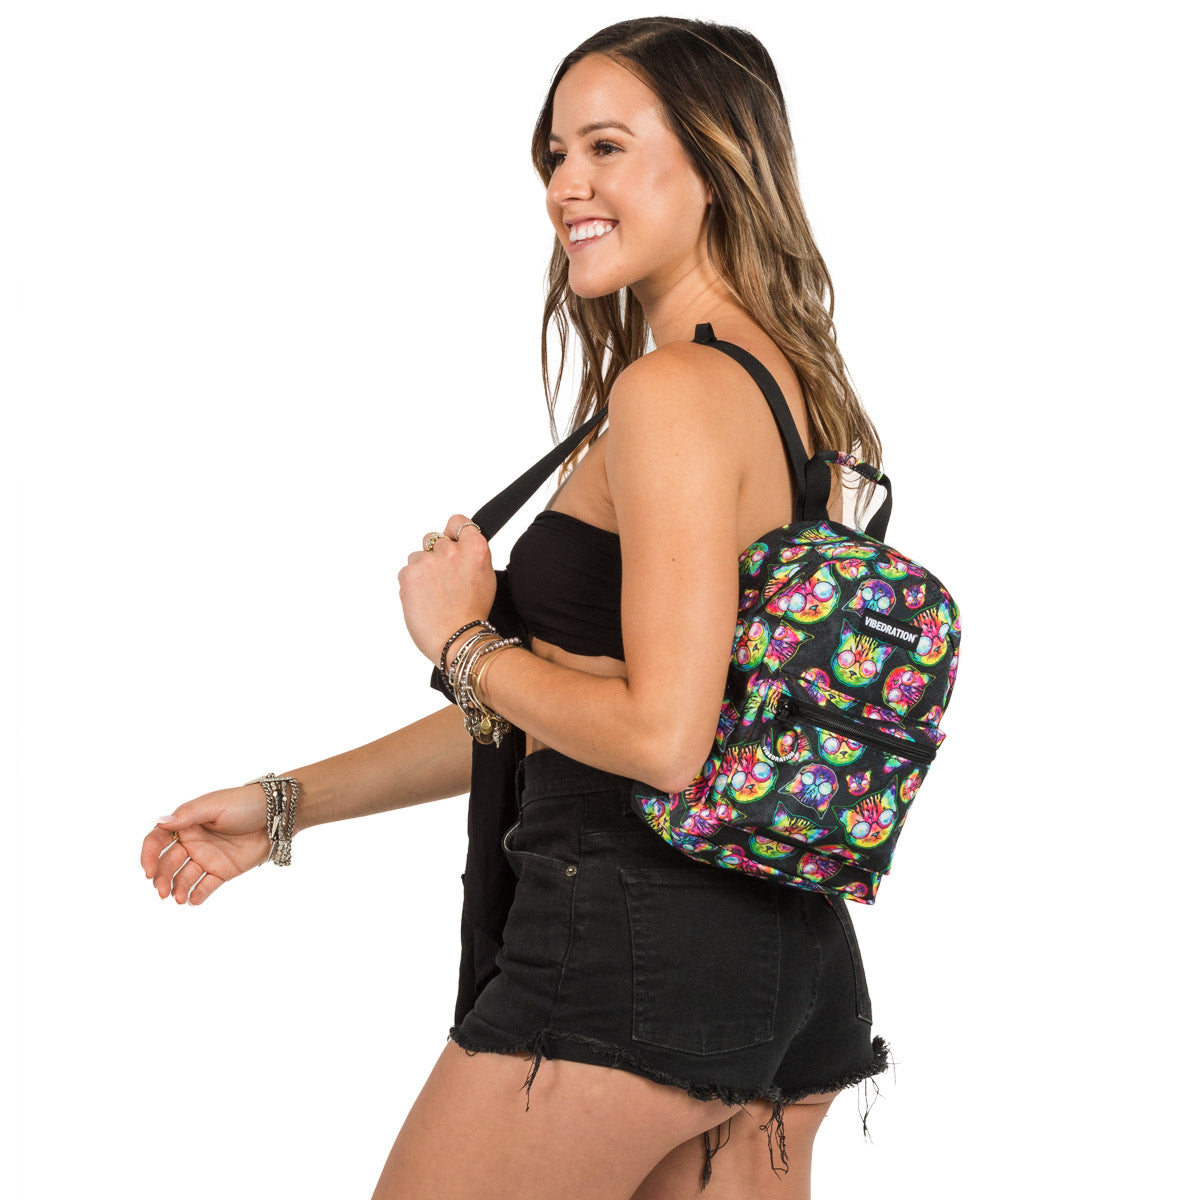 Trippy Kitty Mini Backpack for Raves